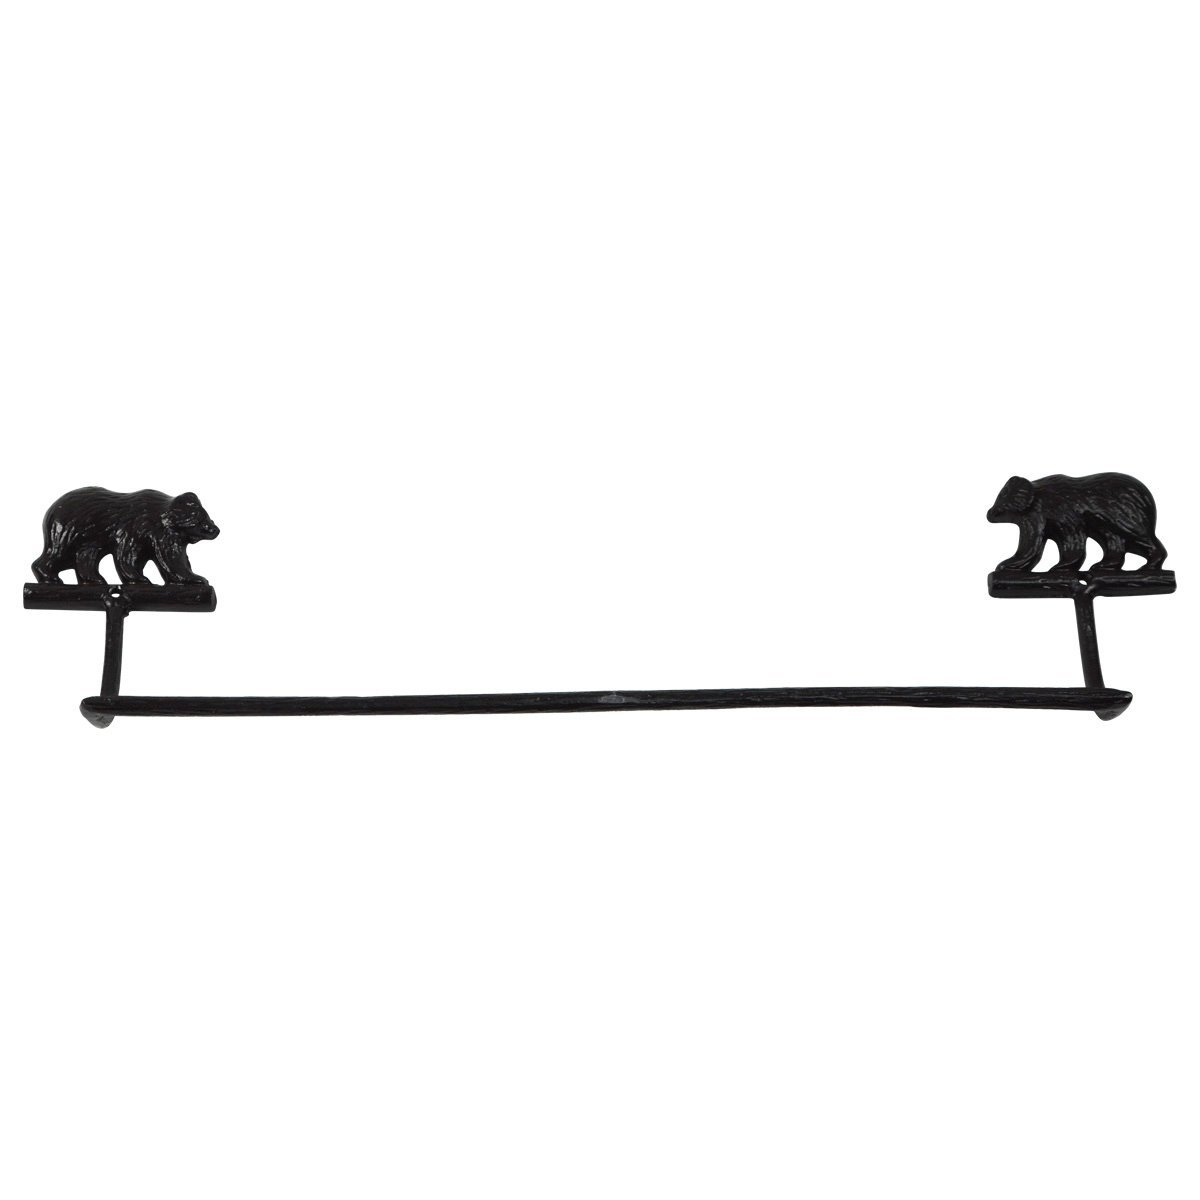 Black Cast Iron Grizzly Bear Bath Towel Bar Holder Rack Rustic Cabin/Lodge Decor